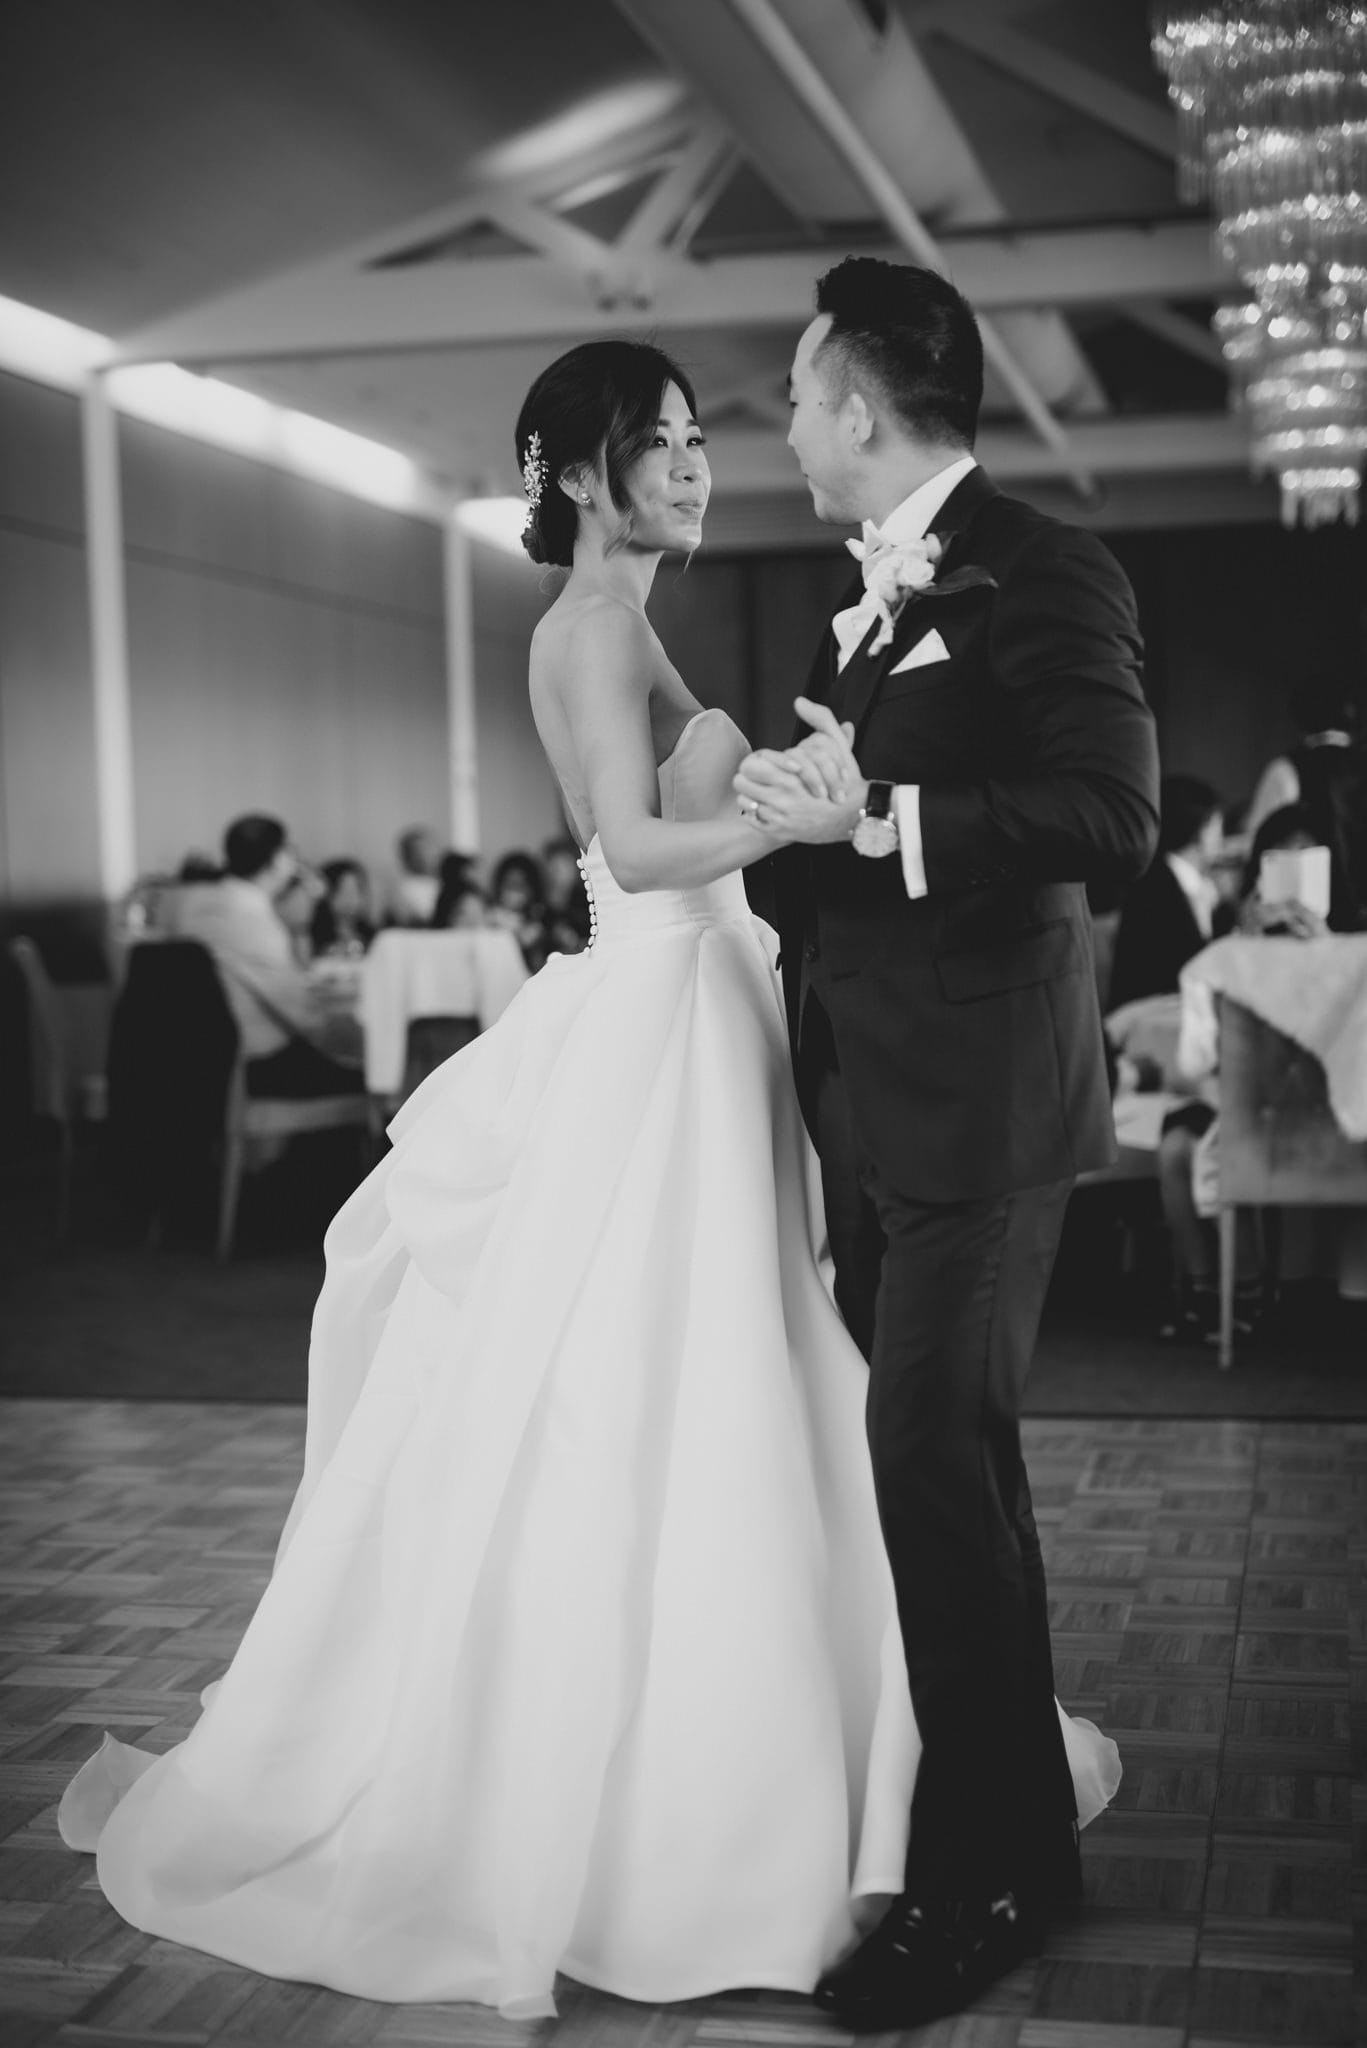 Romantic Ballgown Wedding Dress in Elegant Australia Nuptials. Maggie Bride is wearing Bianca Marie by Maggie Sottero.